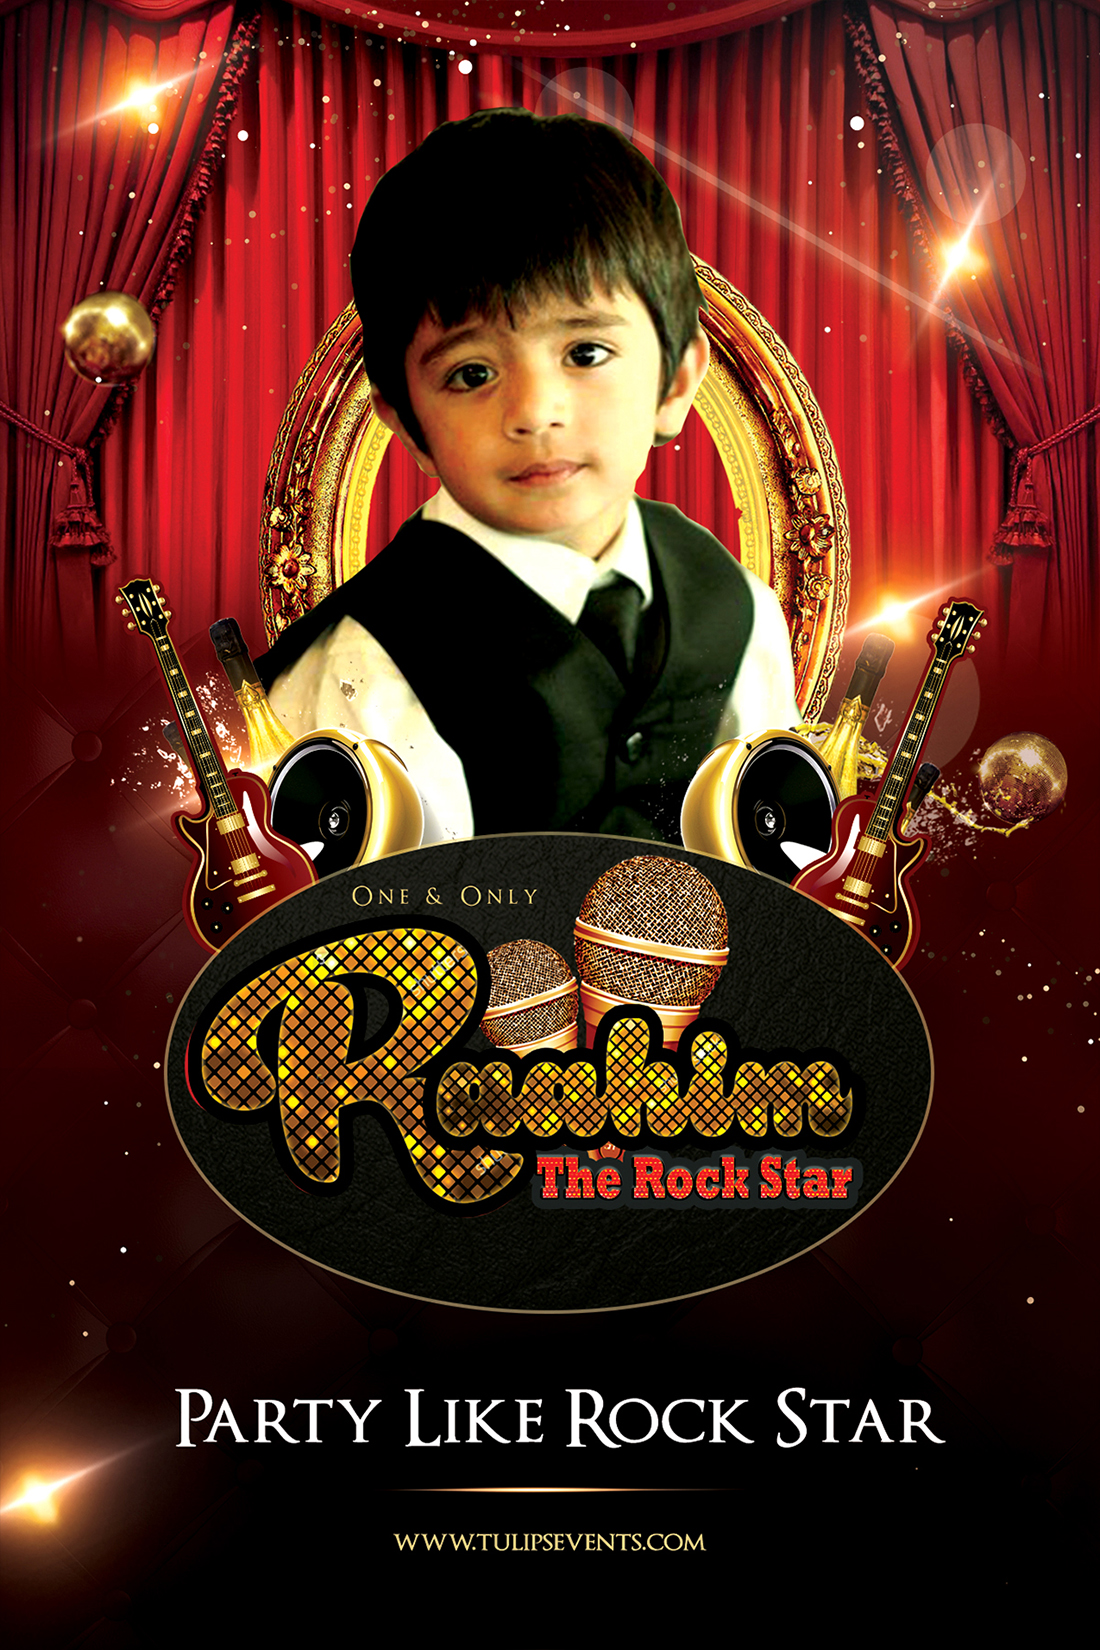 Raahim The Rock Star Birthday Party Poster in Pakistan